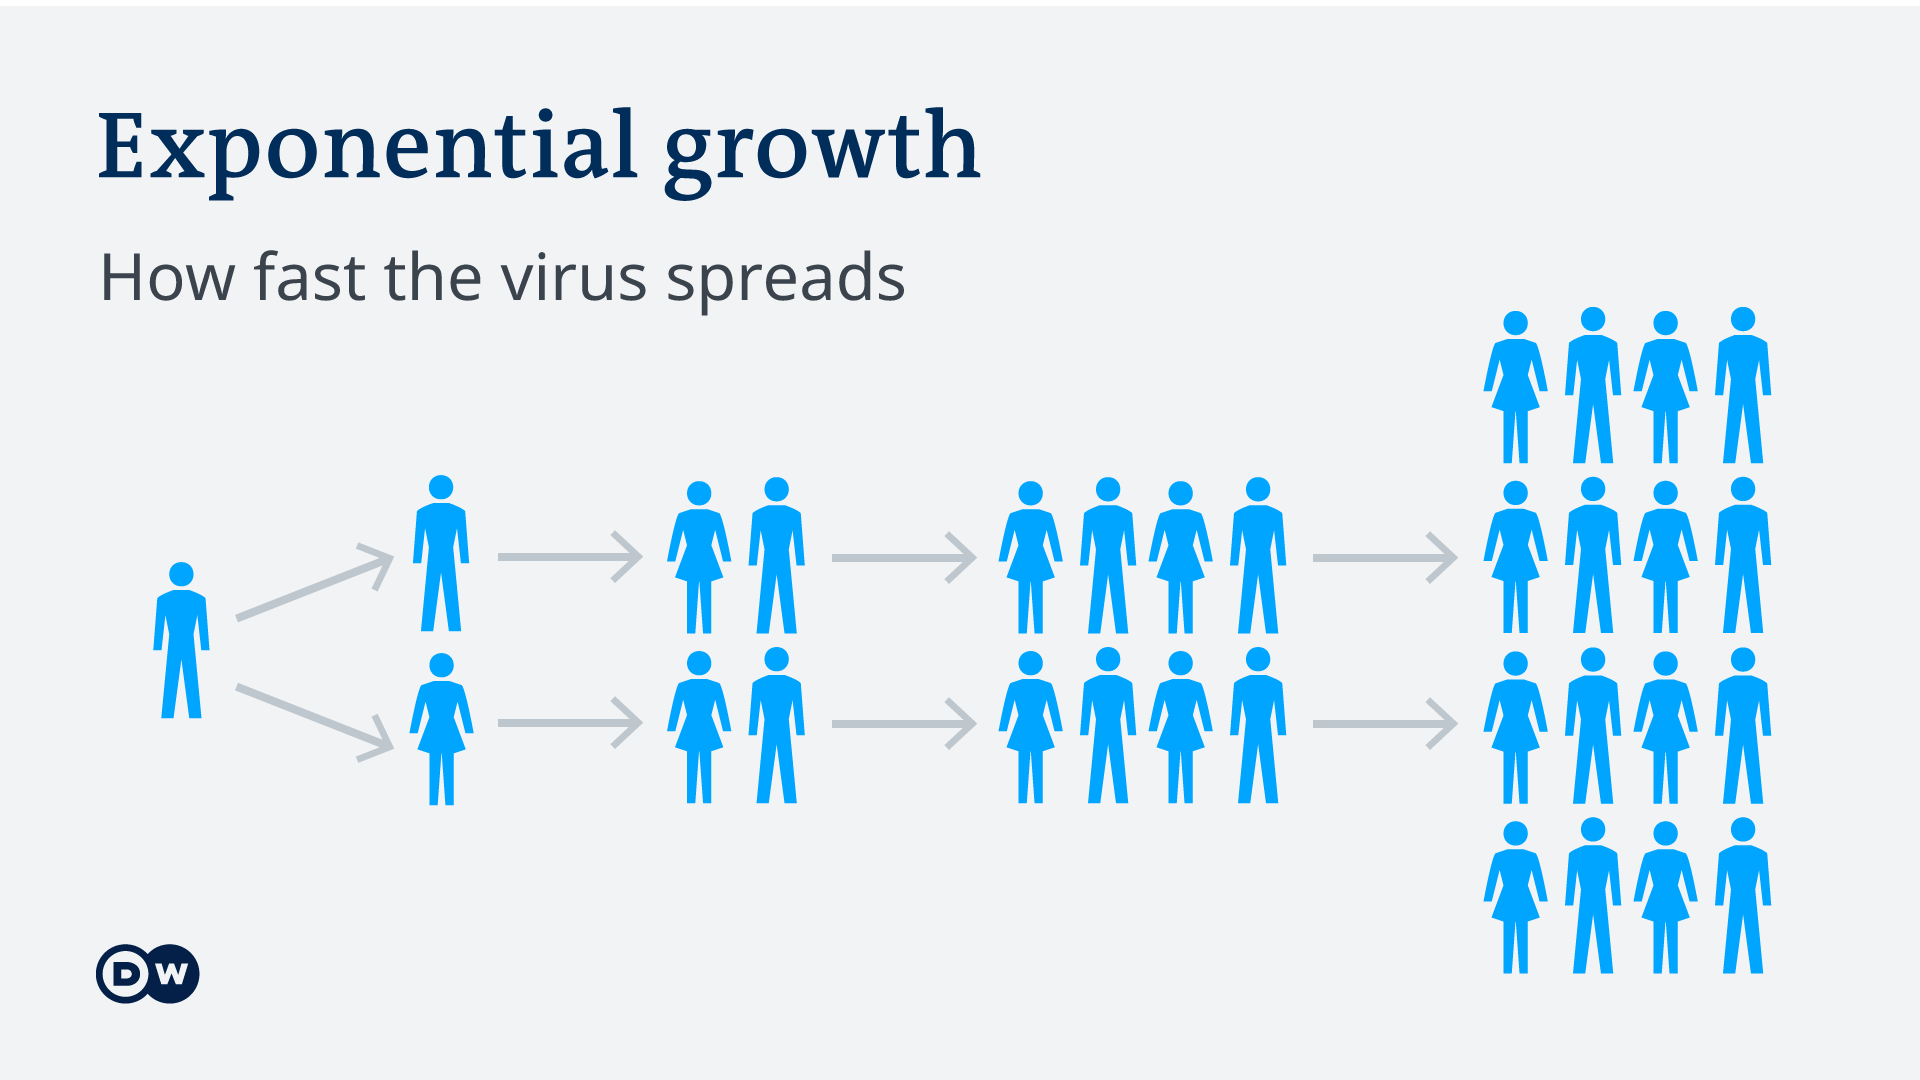 Infographic showing exponential growth of a virus